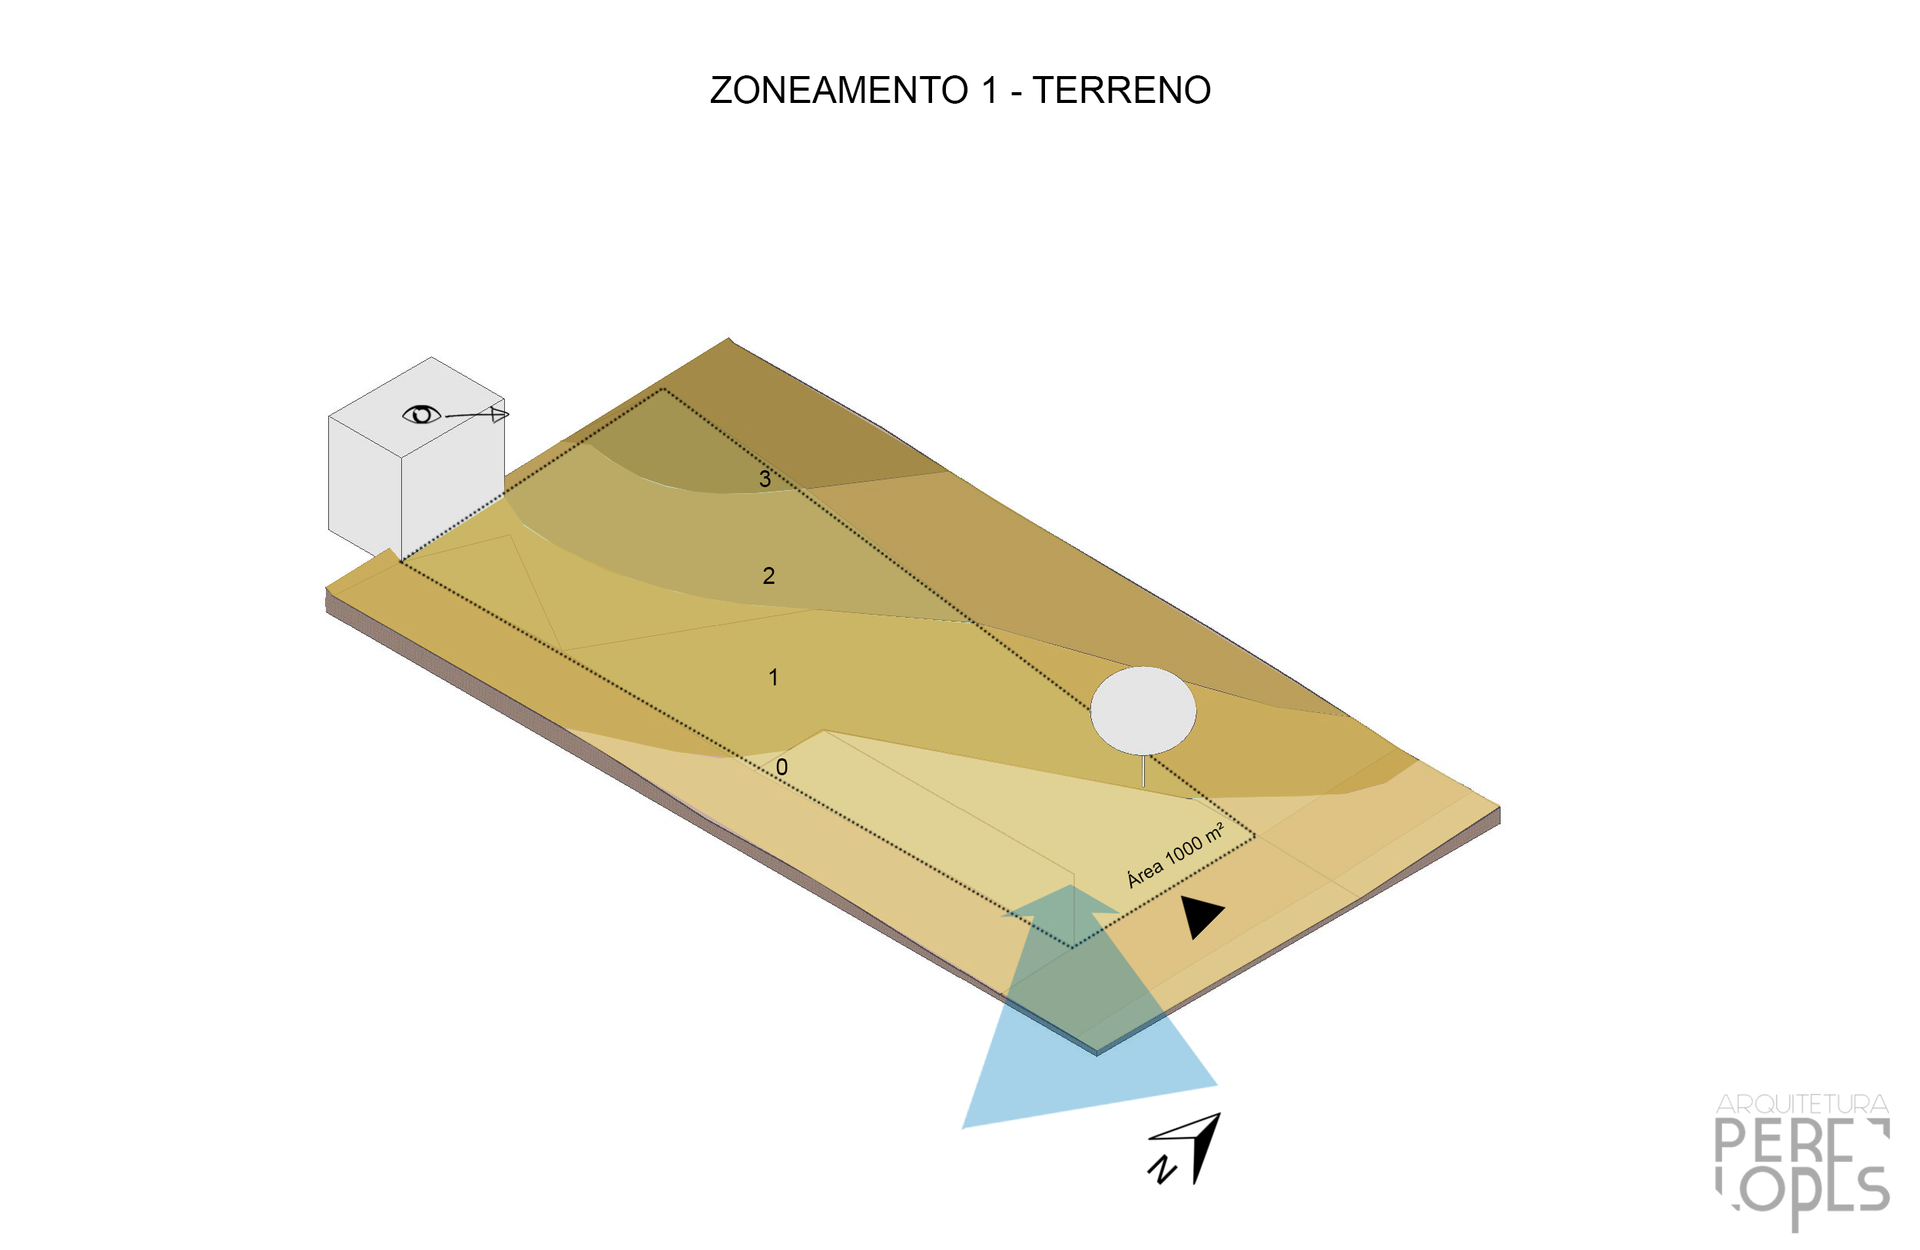 ZONEAMENTO 1 - TERRENO